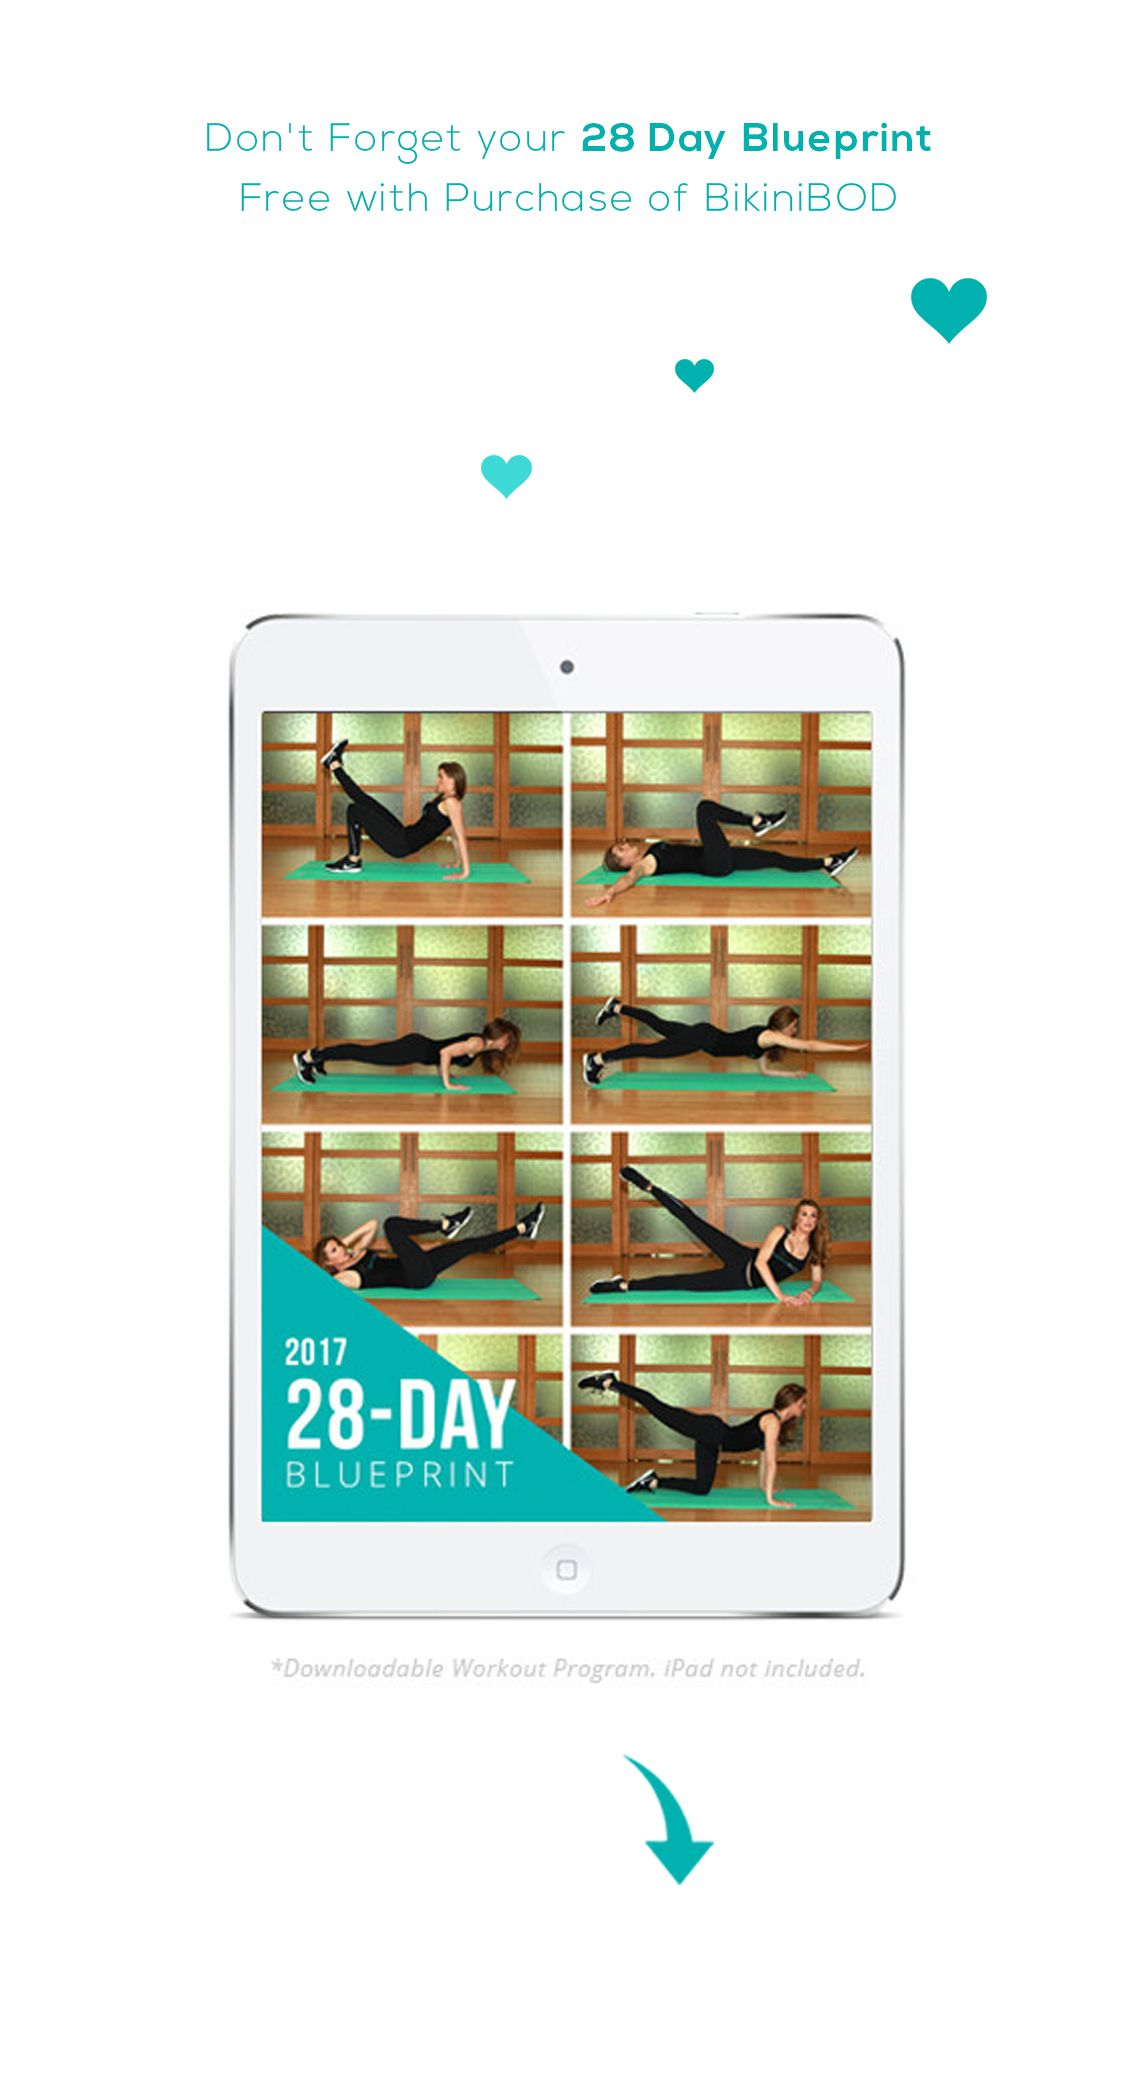 28 day blueprint now available free with purchase of bikinibod workout 28 day blueprint now available free with purchase of bikinibod christie cash ifbb bikini pro malvernweather Gallery